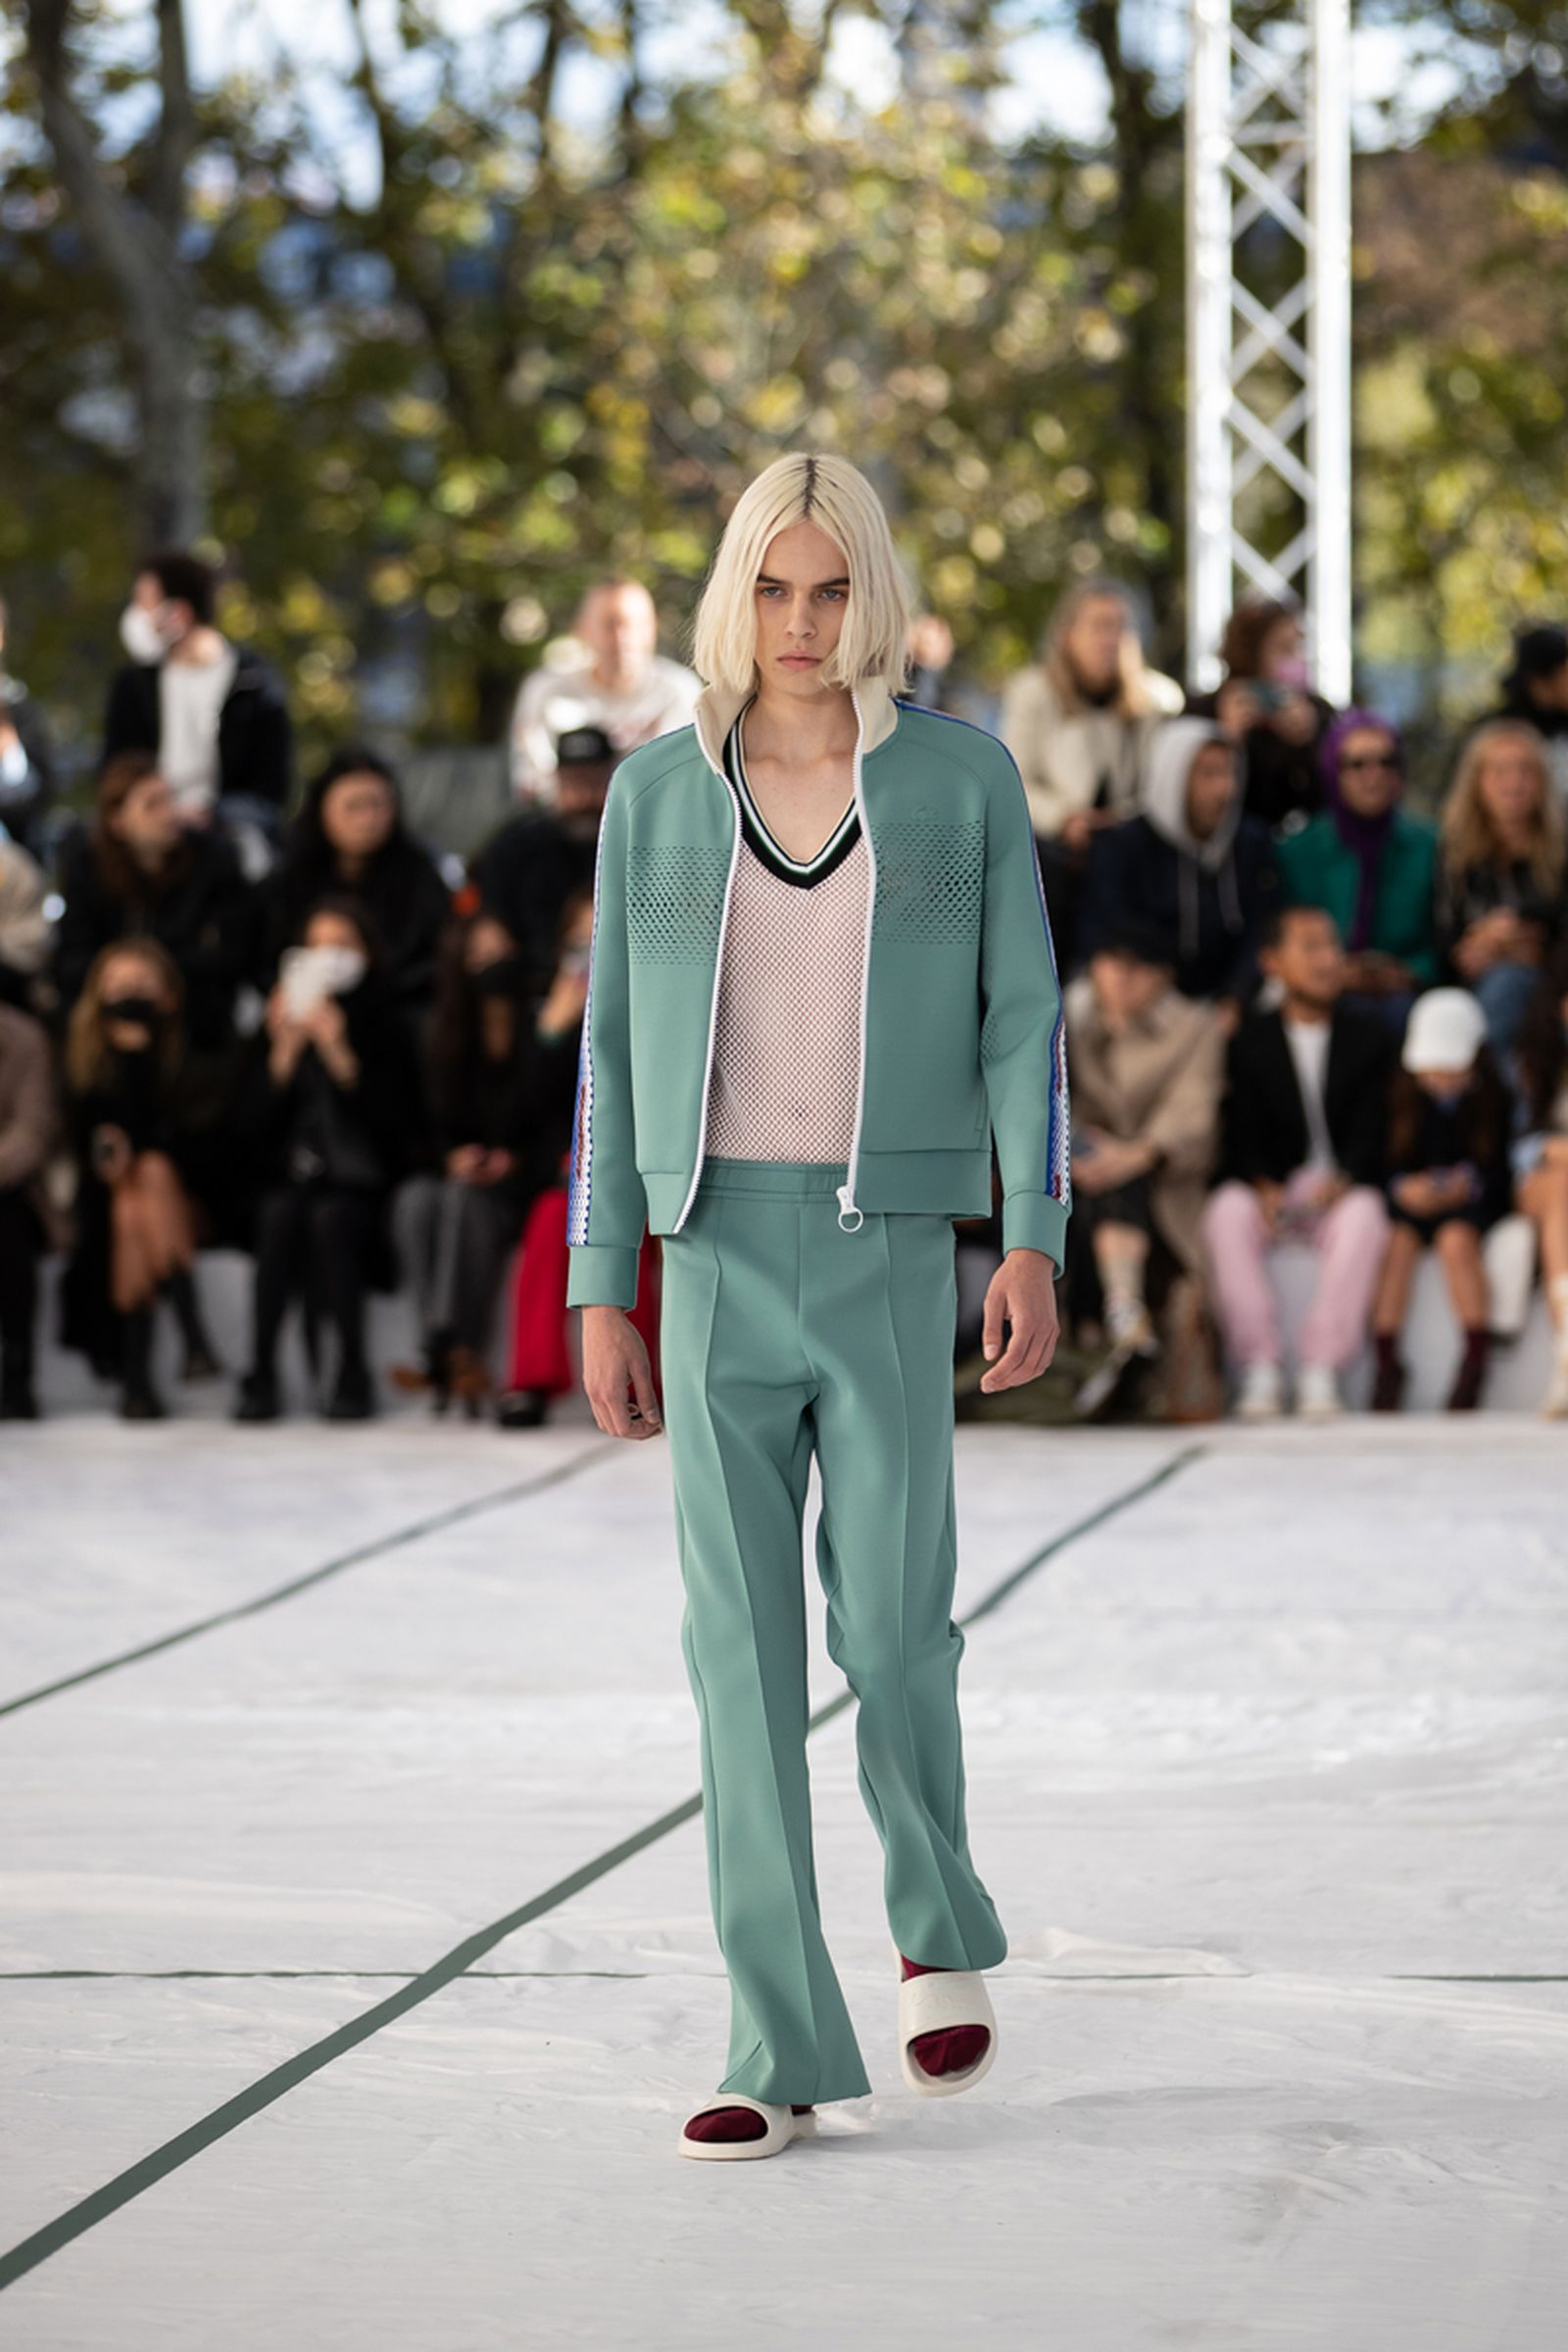 lacoste-spring-summer-2022-collection (12)